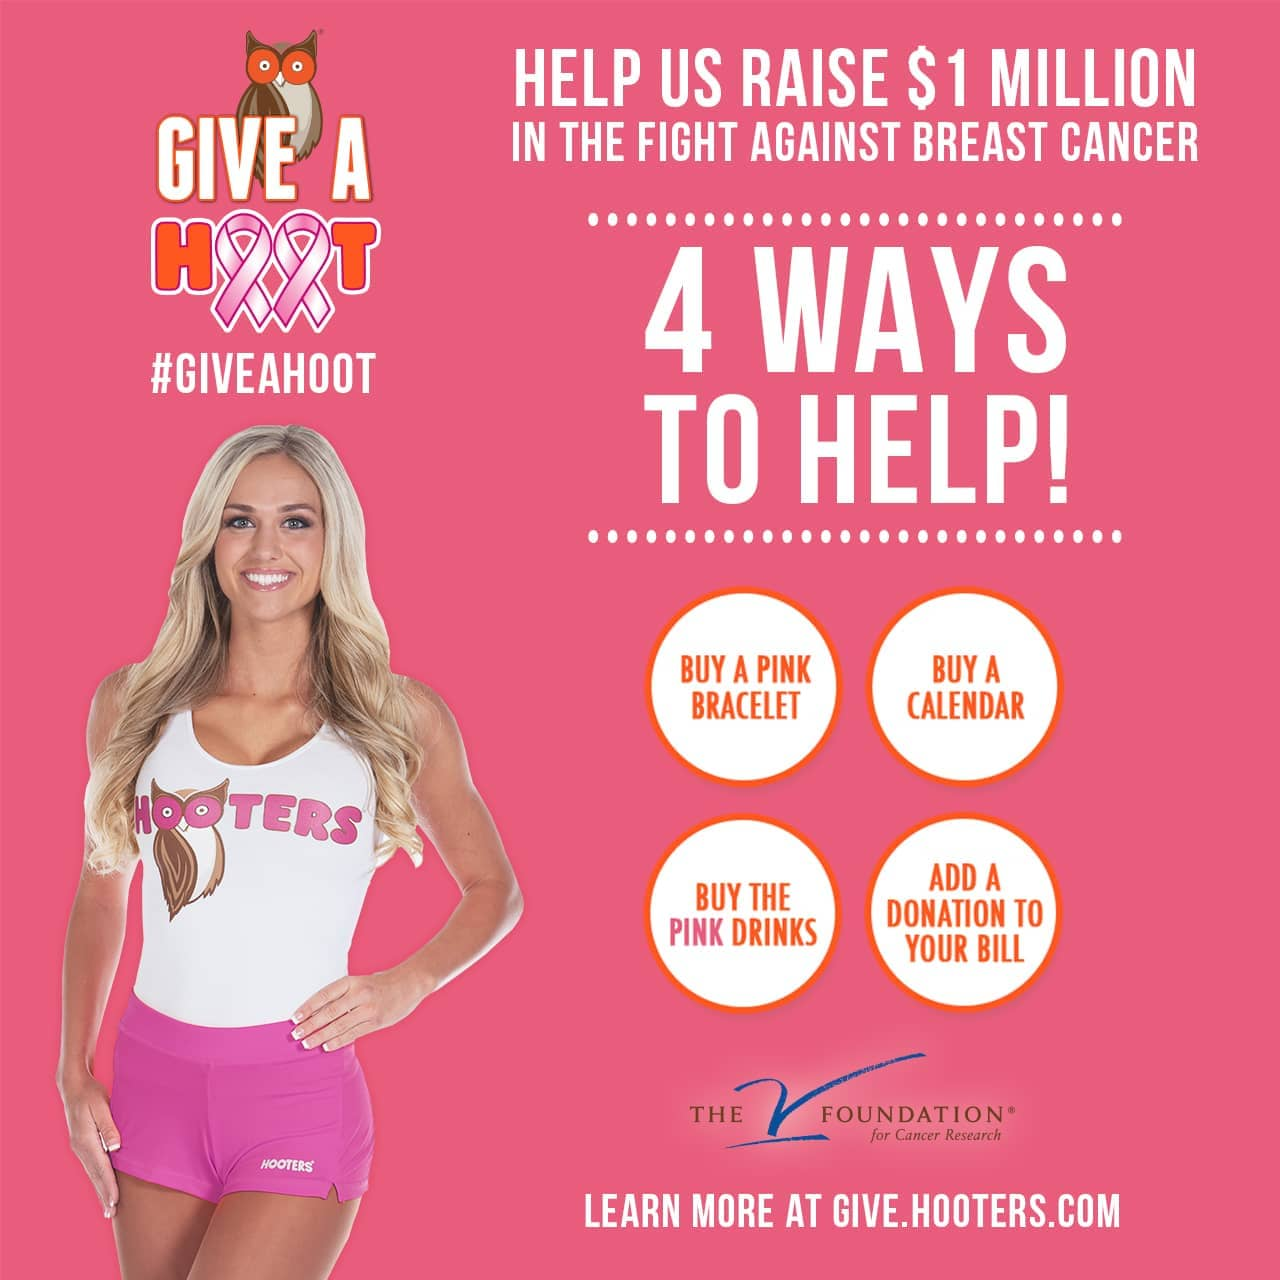 f306e409ad8 Hooters Asks America to  Give A Hoot  in the Fight Against Breast Cancer